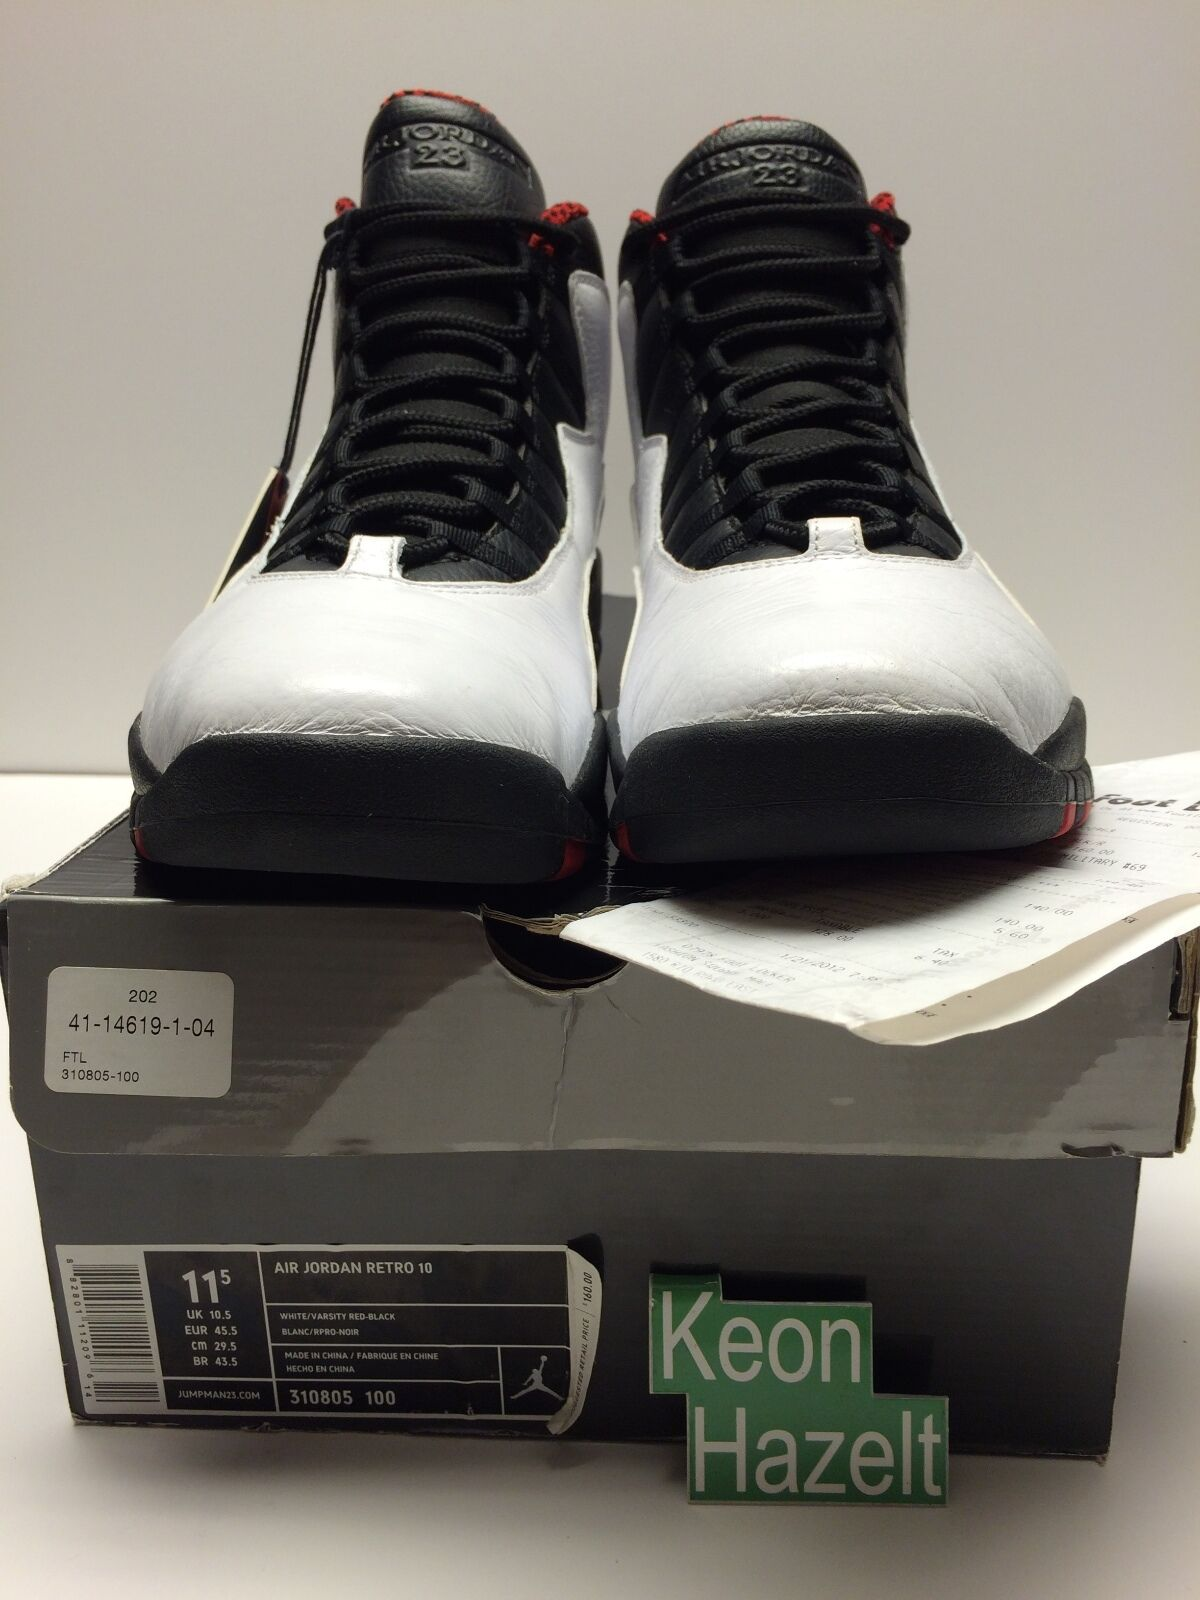 nike air jordan 10 x retro - chicago zement 11,5 schwarzer stahl - sz 11,5 zement vnds gezüchtet. b64602